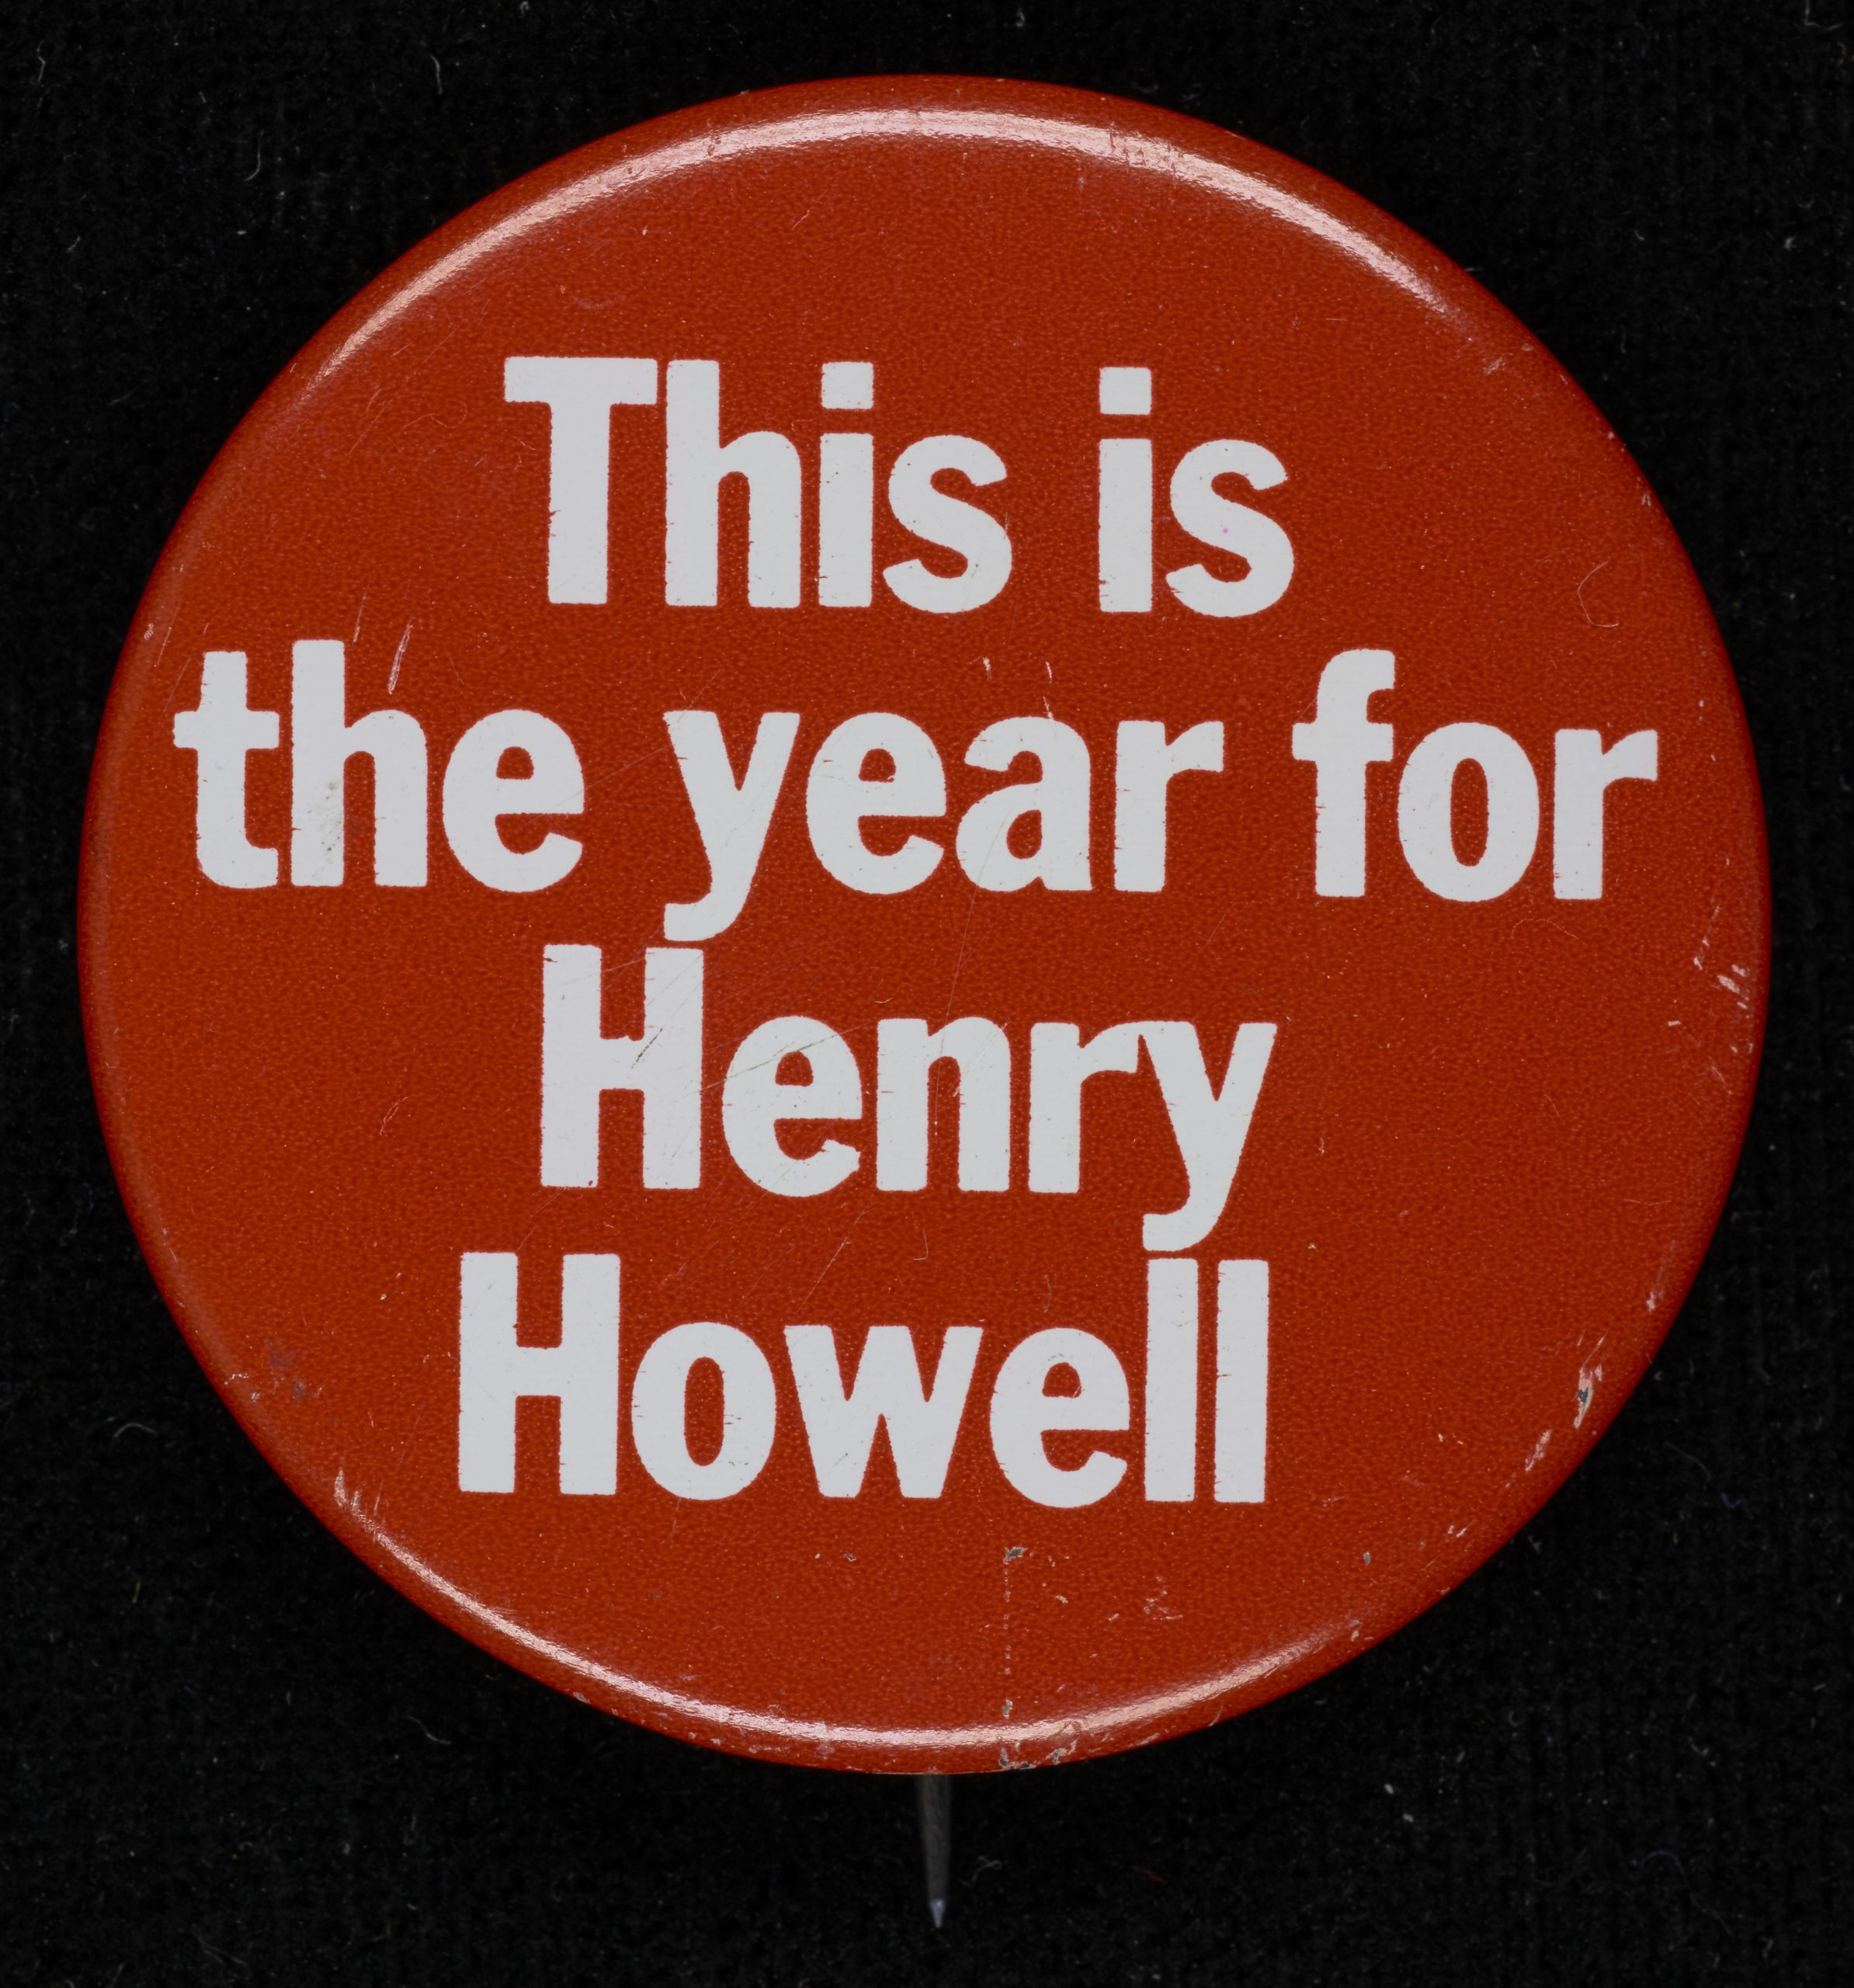 This is the year for Henry Howell